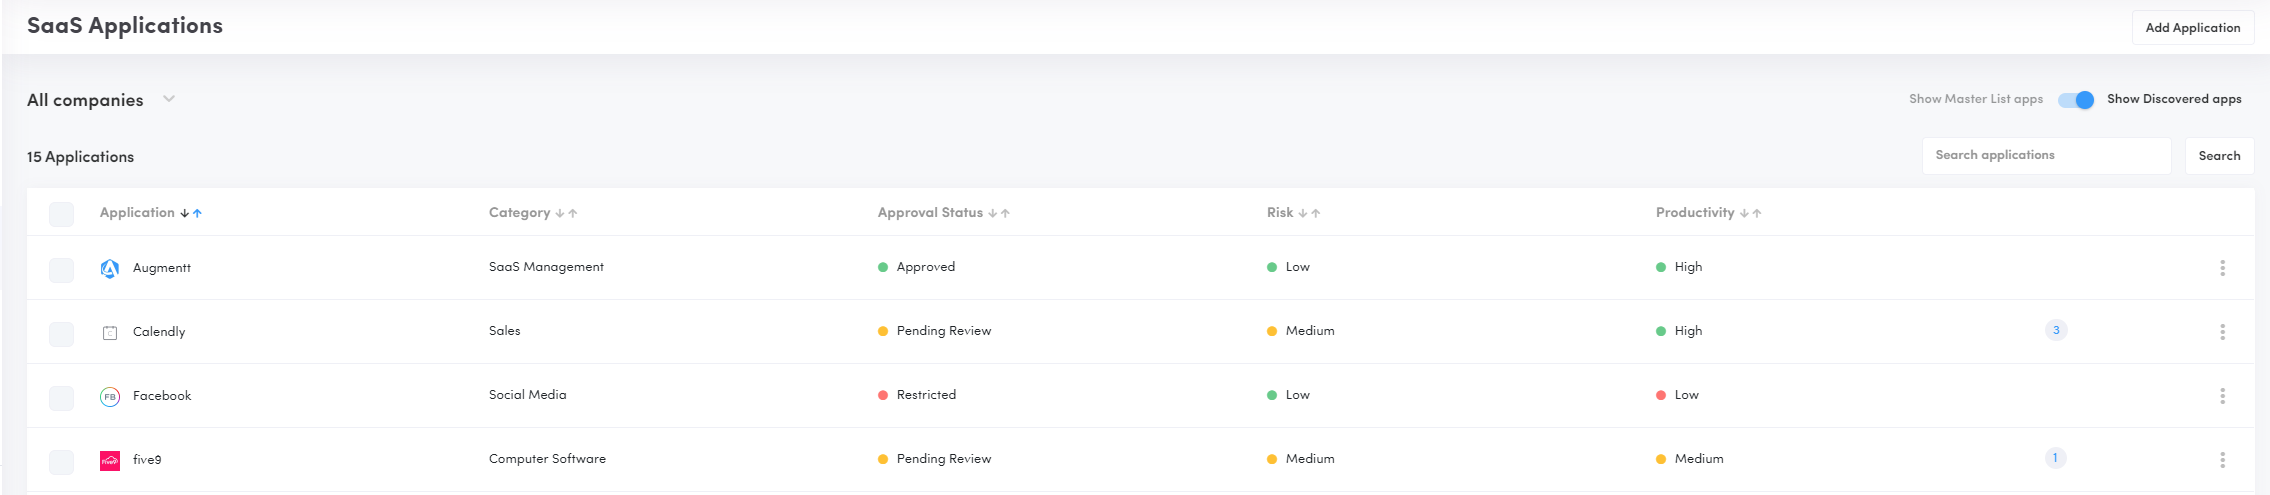 v2.8 All SaaS Applications View